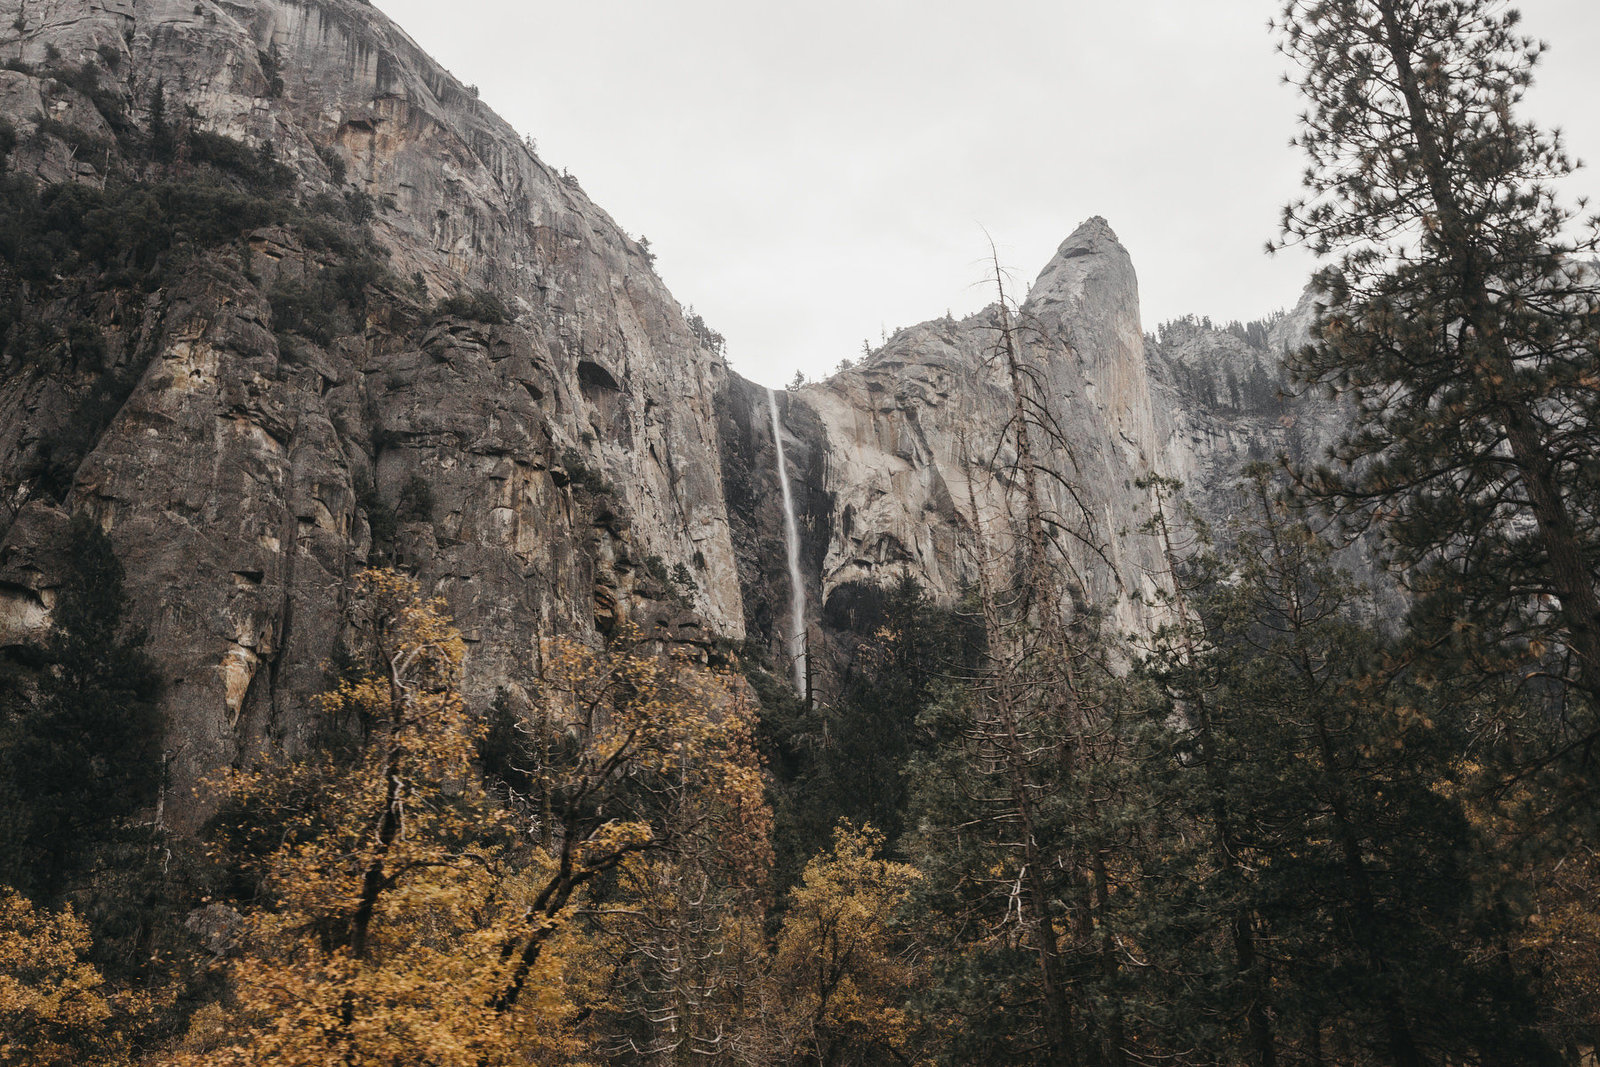 athena-and-camron-how-to-elope-in-yosemite-valley-lower-valley-woods7